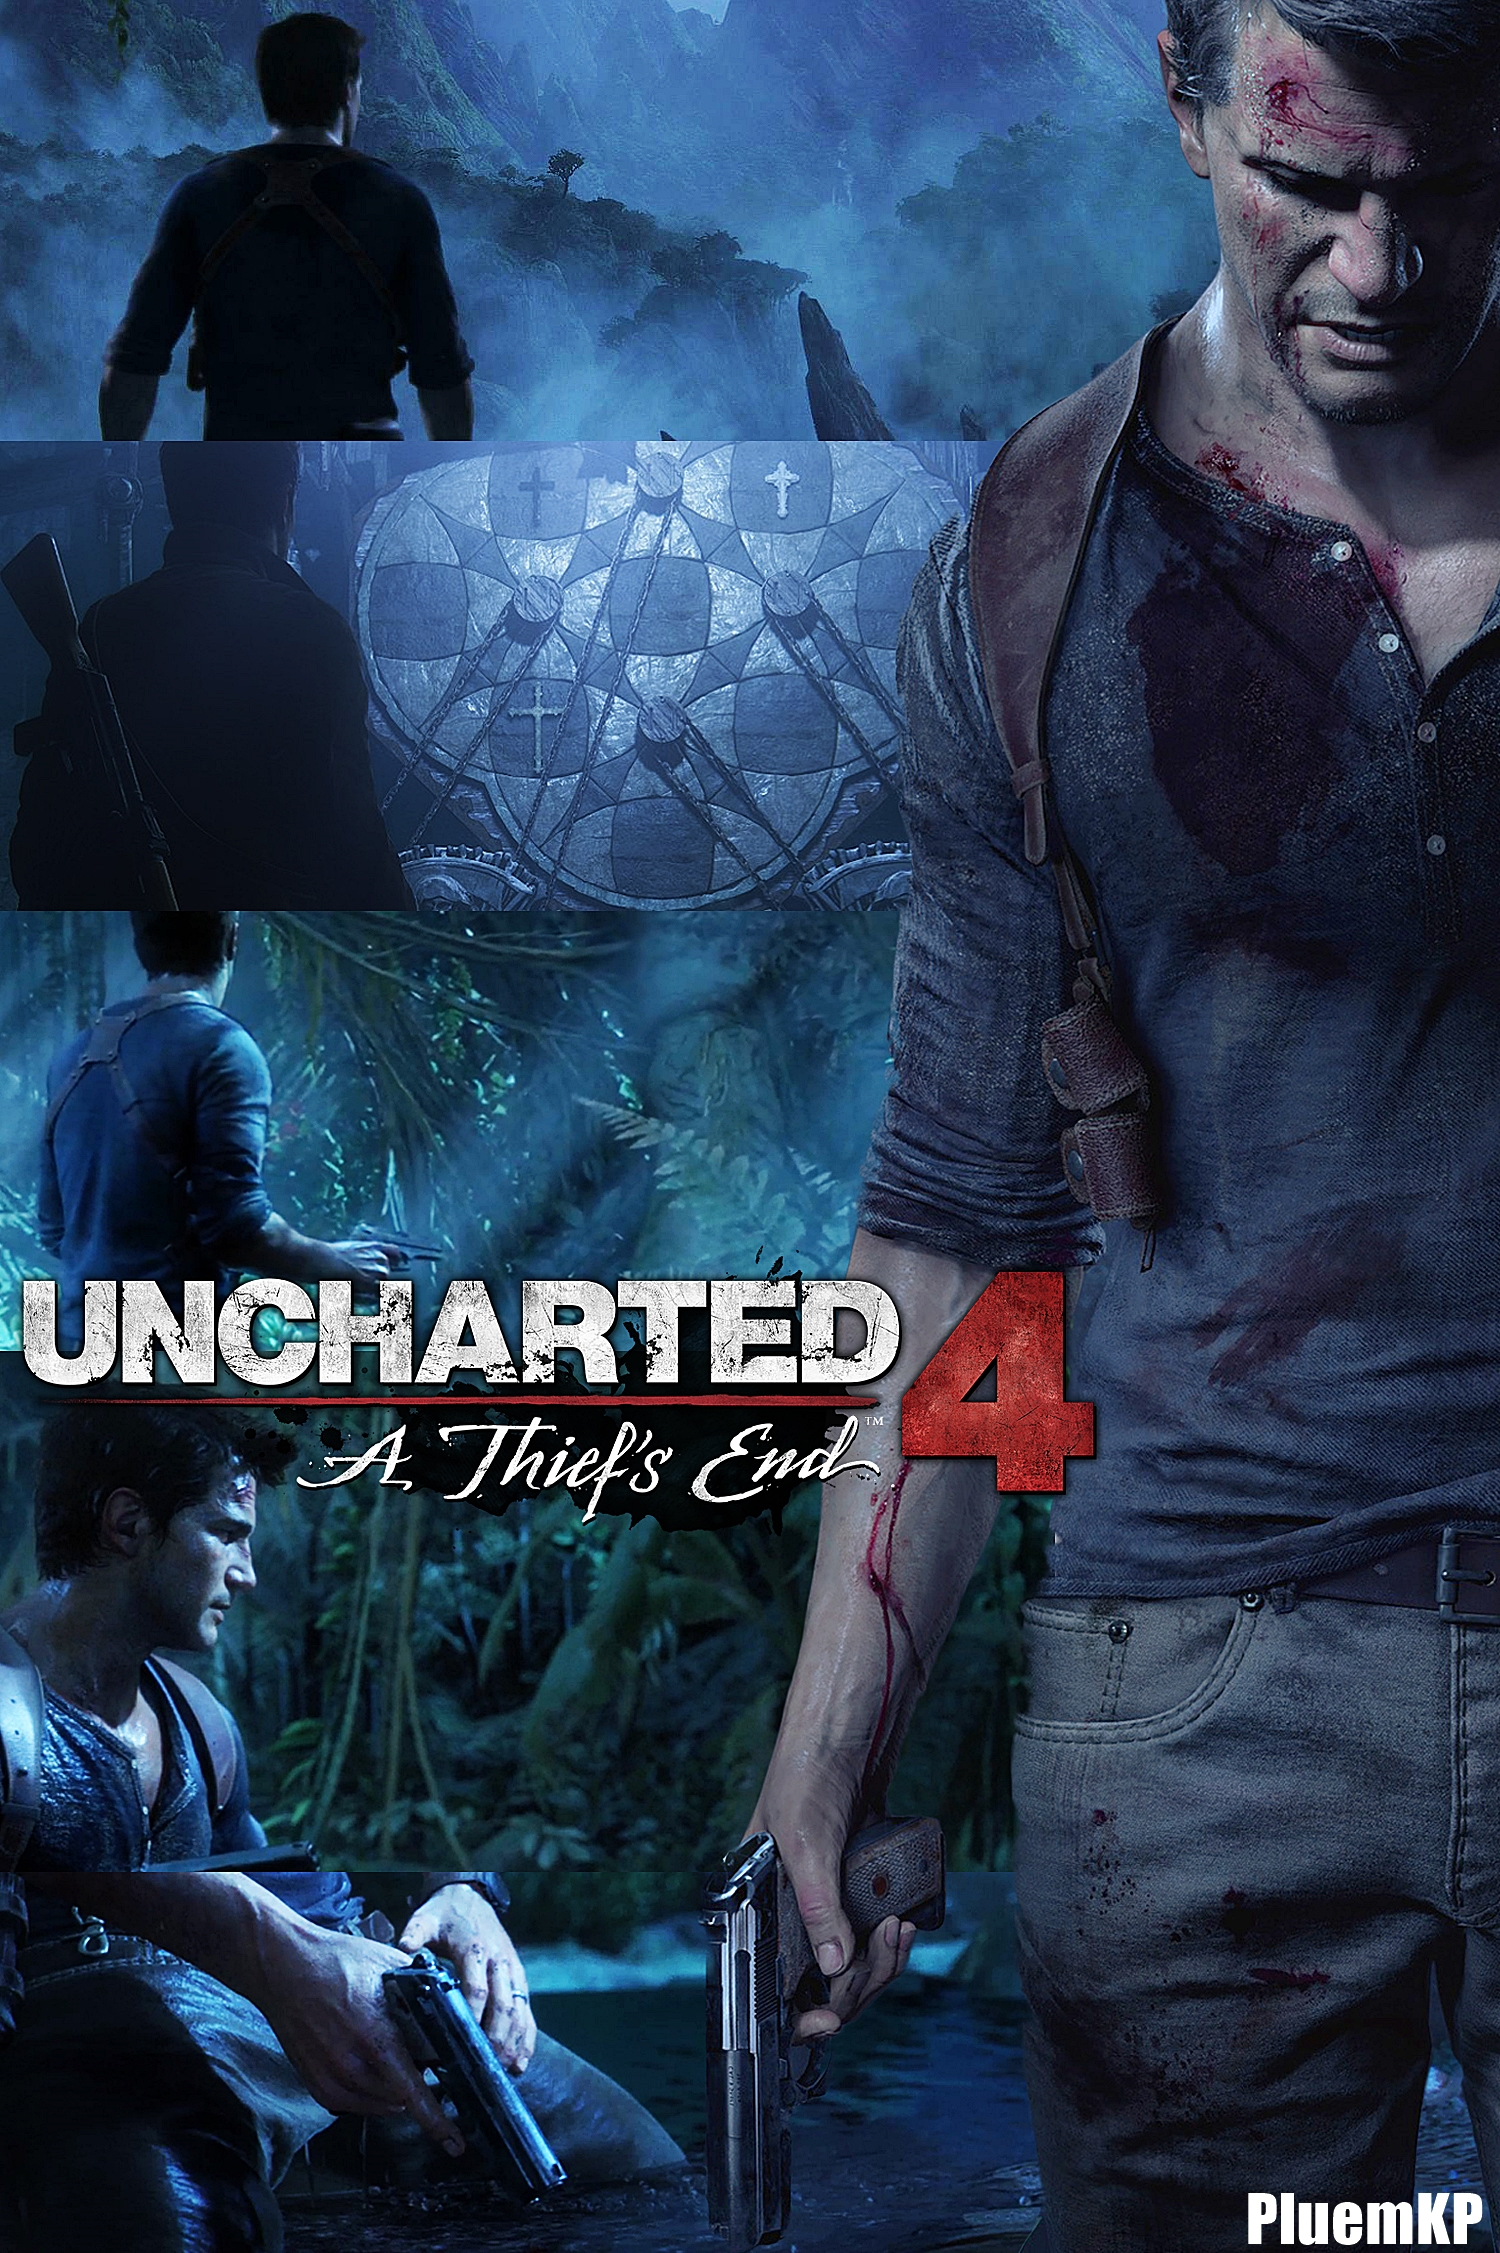 Uncharted 4 A Thief S End Poster By Pluemkp On Deviantart